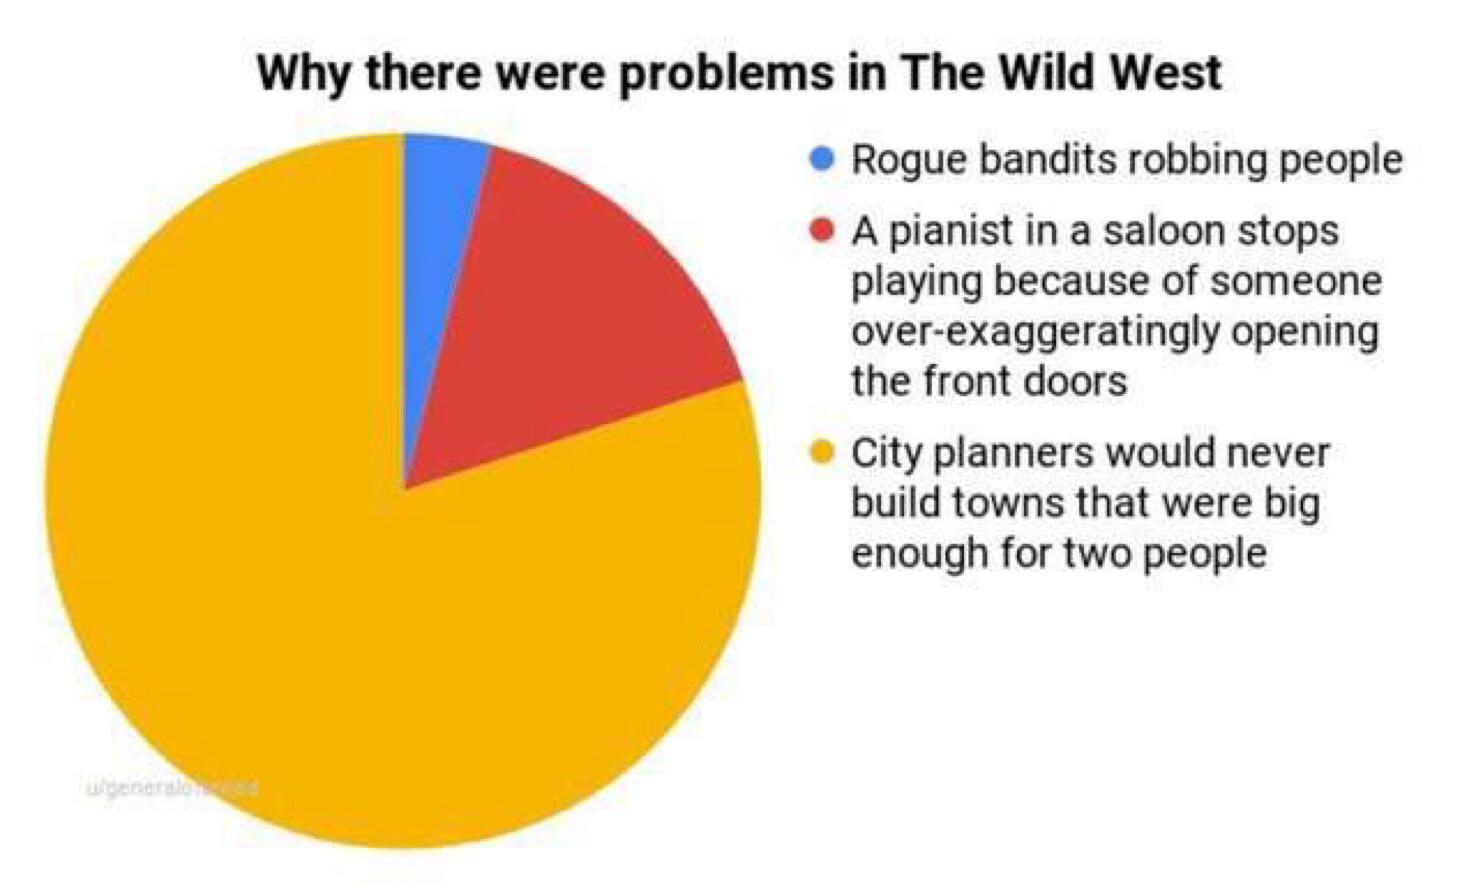 Why There Were Problems in the Wild West